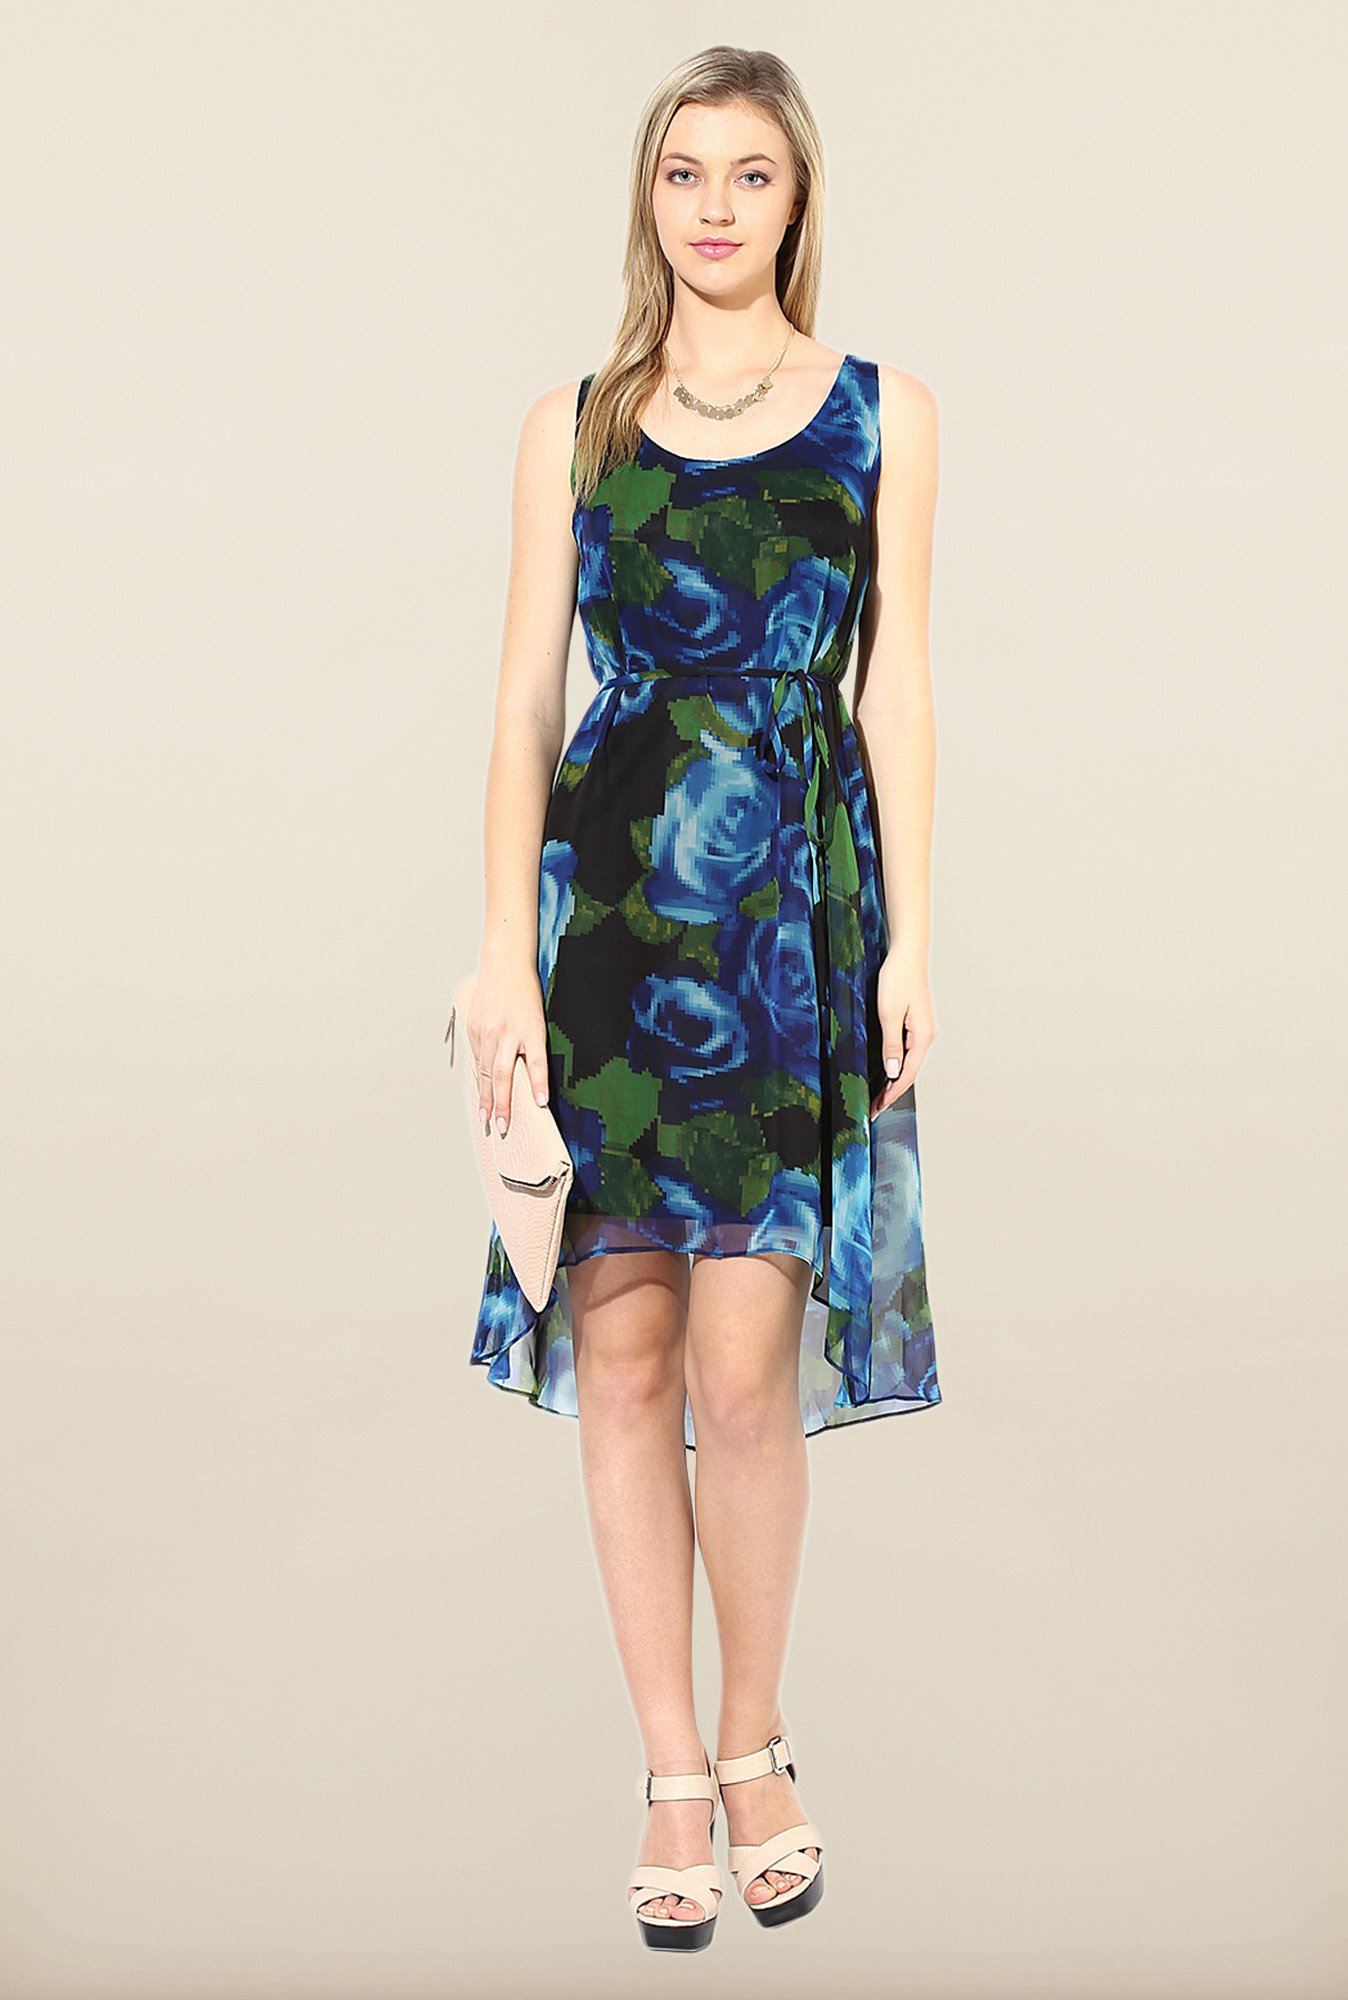 Avirate Green & Blue Printed High-Low Dress